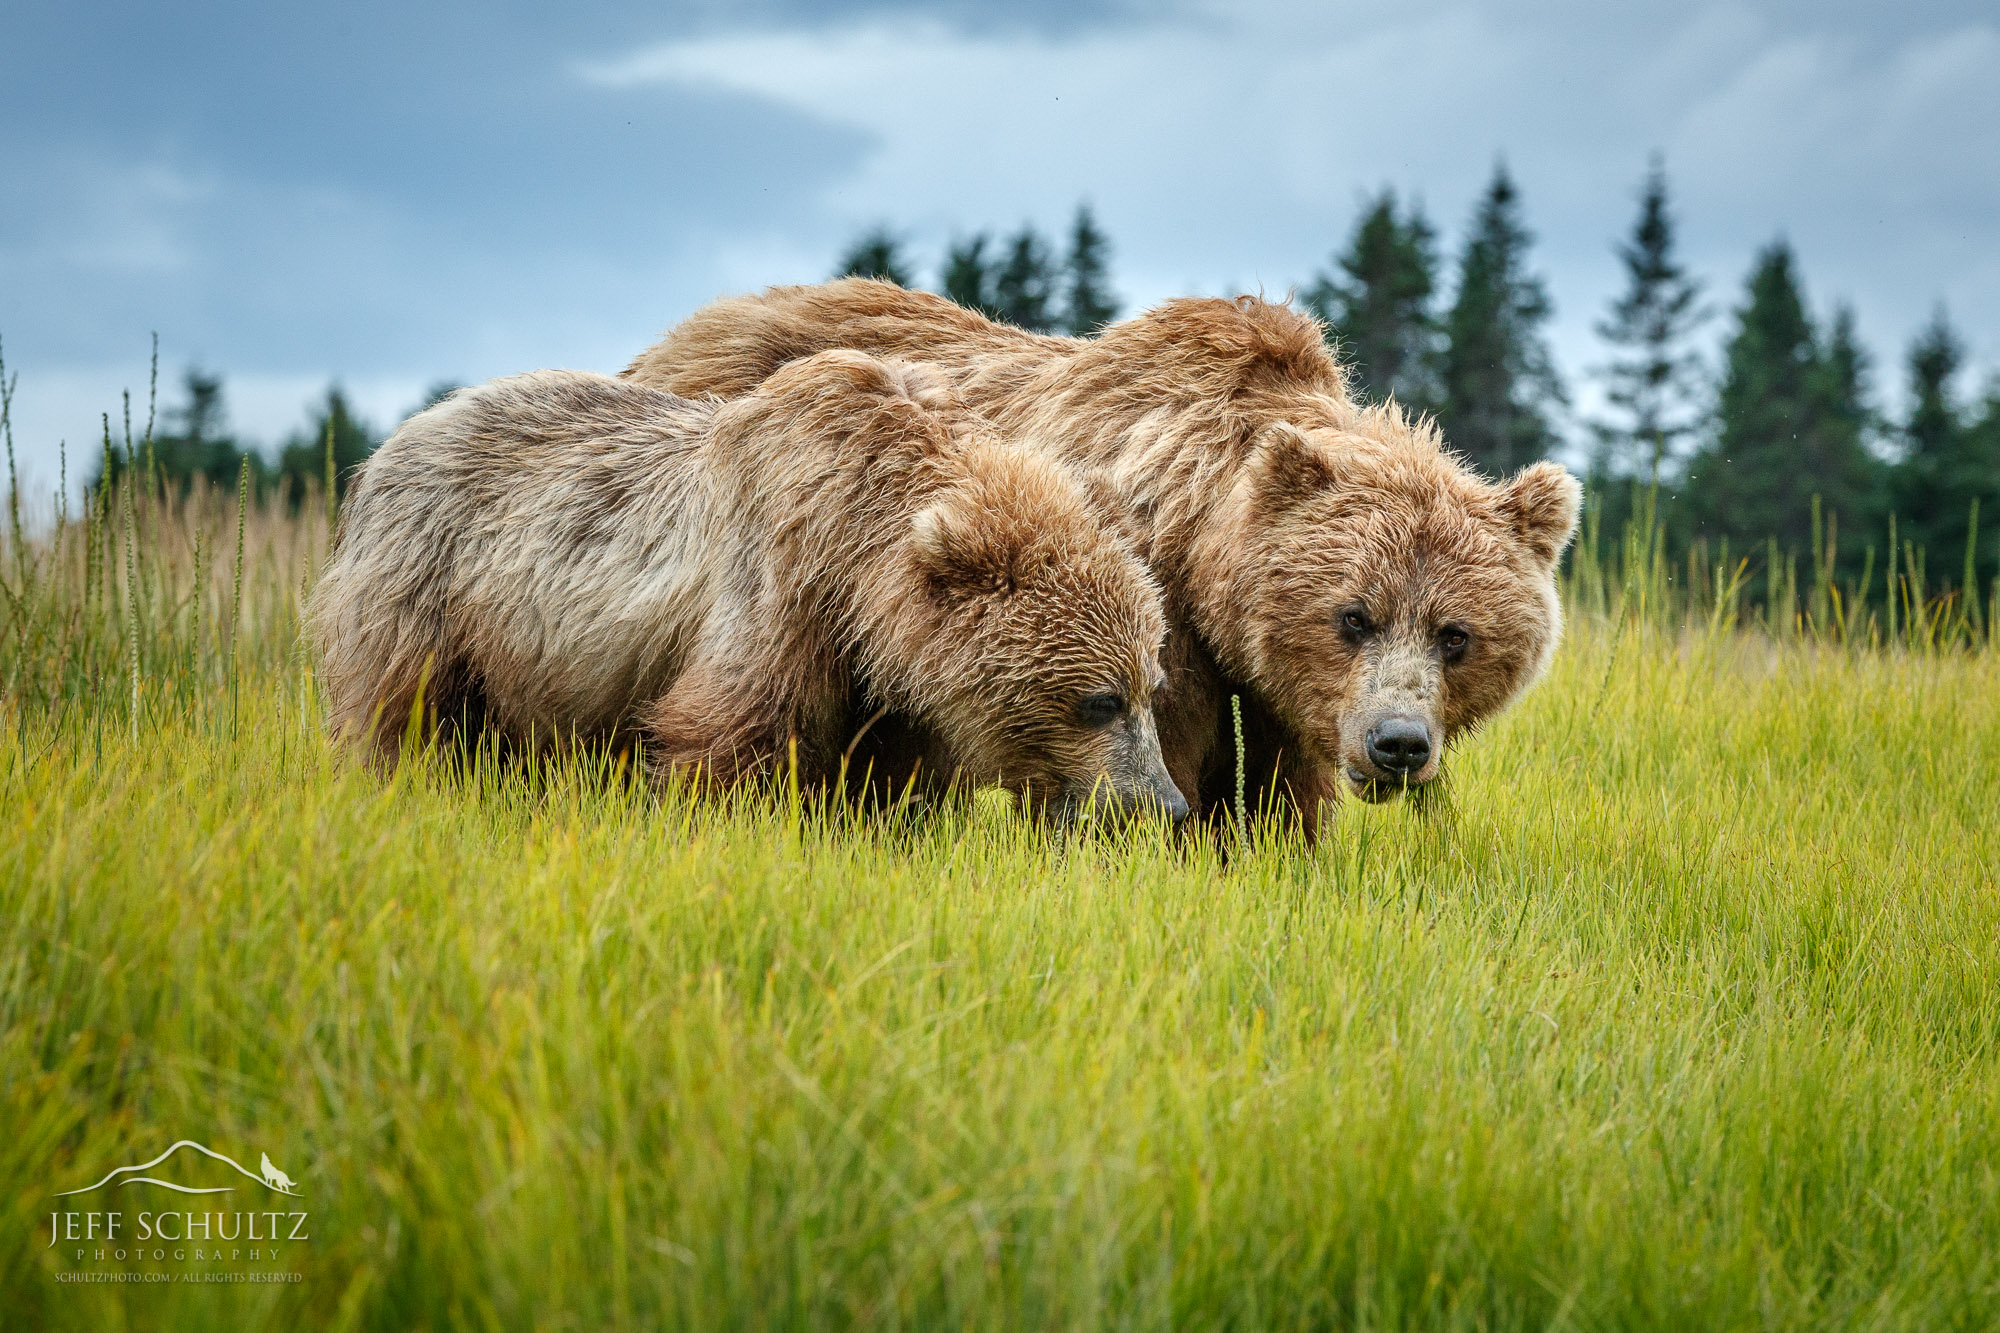 Alaska Wildlife Photography - Jeff Schultz